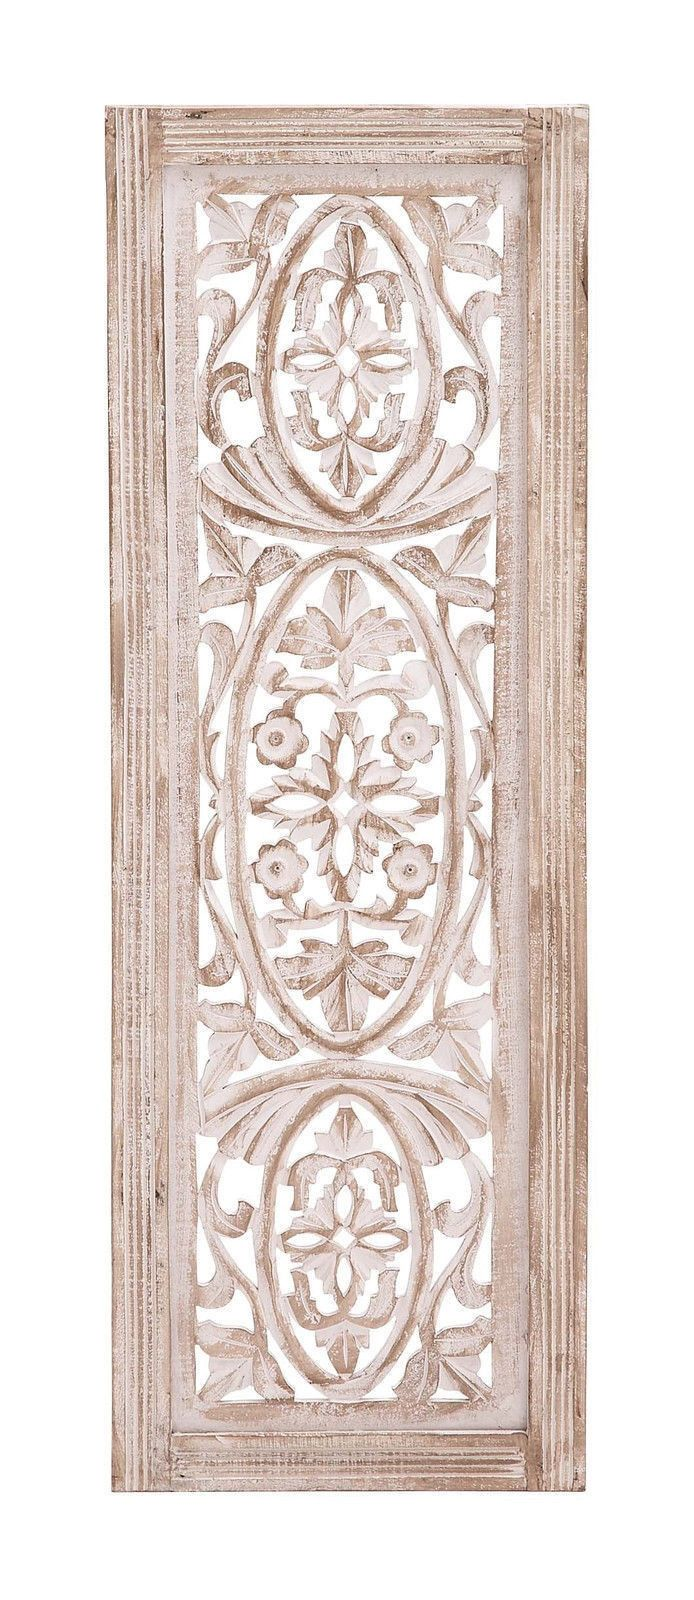 Best 25 carved wood wall art ideas on pinterest - Wooden panel art ...